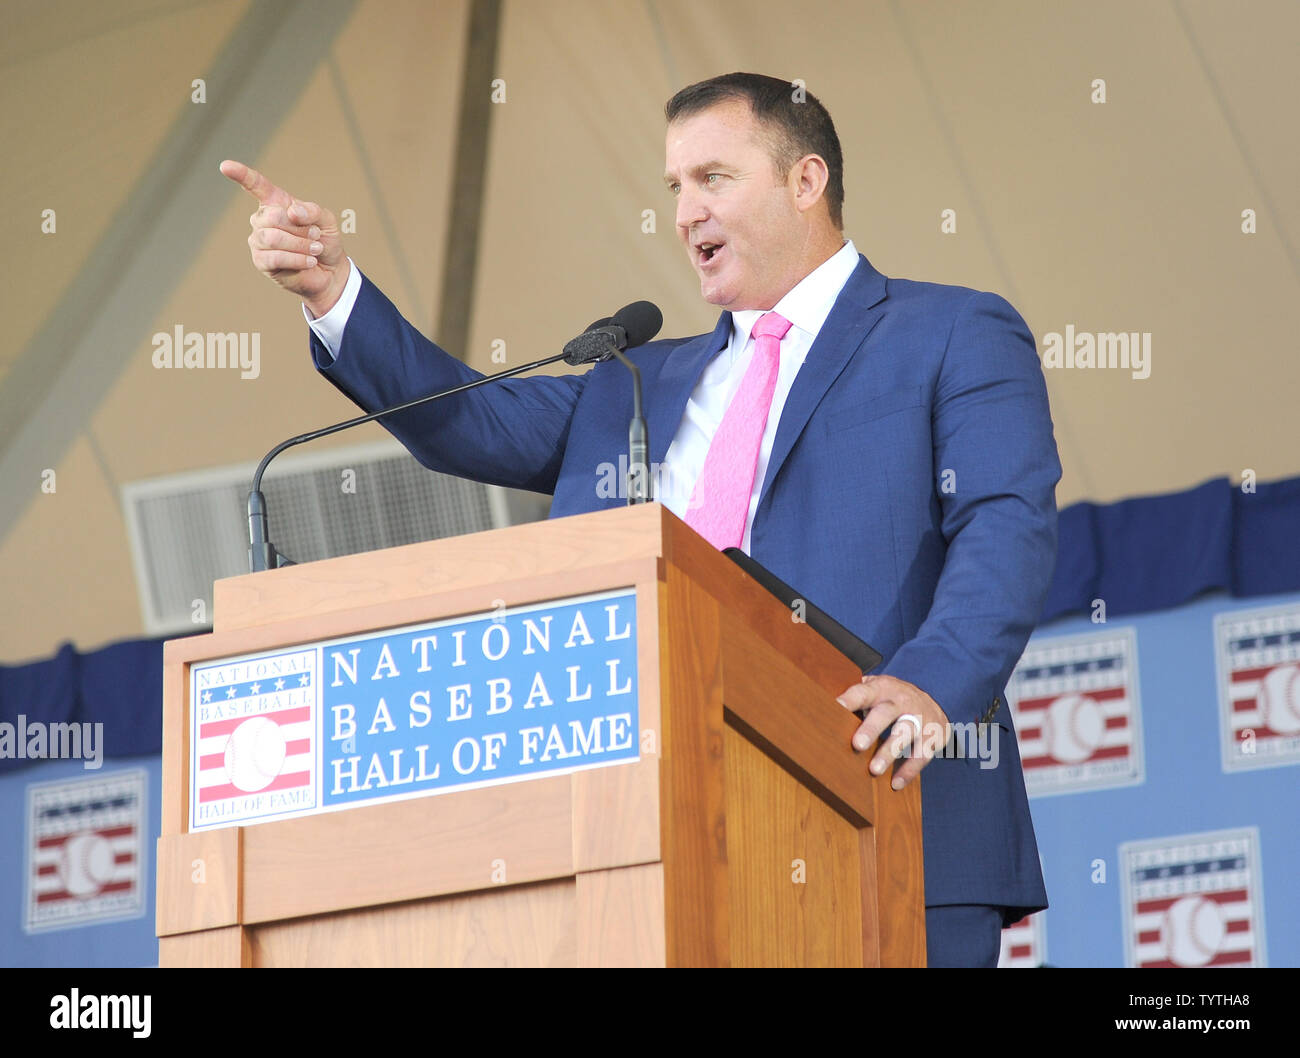 Jim Thome delivers his Baseball Hall of Fame induction speech at the Clark Sports Center in Cooperstown, NY on July 29, 2018.  A record 60 Hall of Famers are scheduled to be in Central New York to honor Vladimir Guerrero, Trevor Hoffman, Chipper Jones, Jack Morris, Jim Thome and Alan Trammell at the National Baseball Hall of Fame and Museum during Hall of Fame Weekend on July 27-30.     Photo by George Napolitano/UPI                                                                                                   . - Stock Image